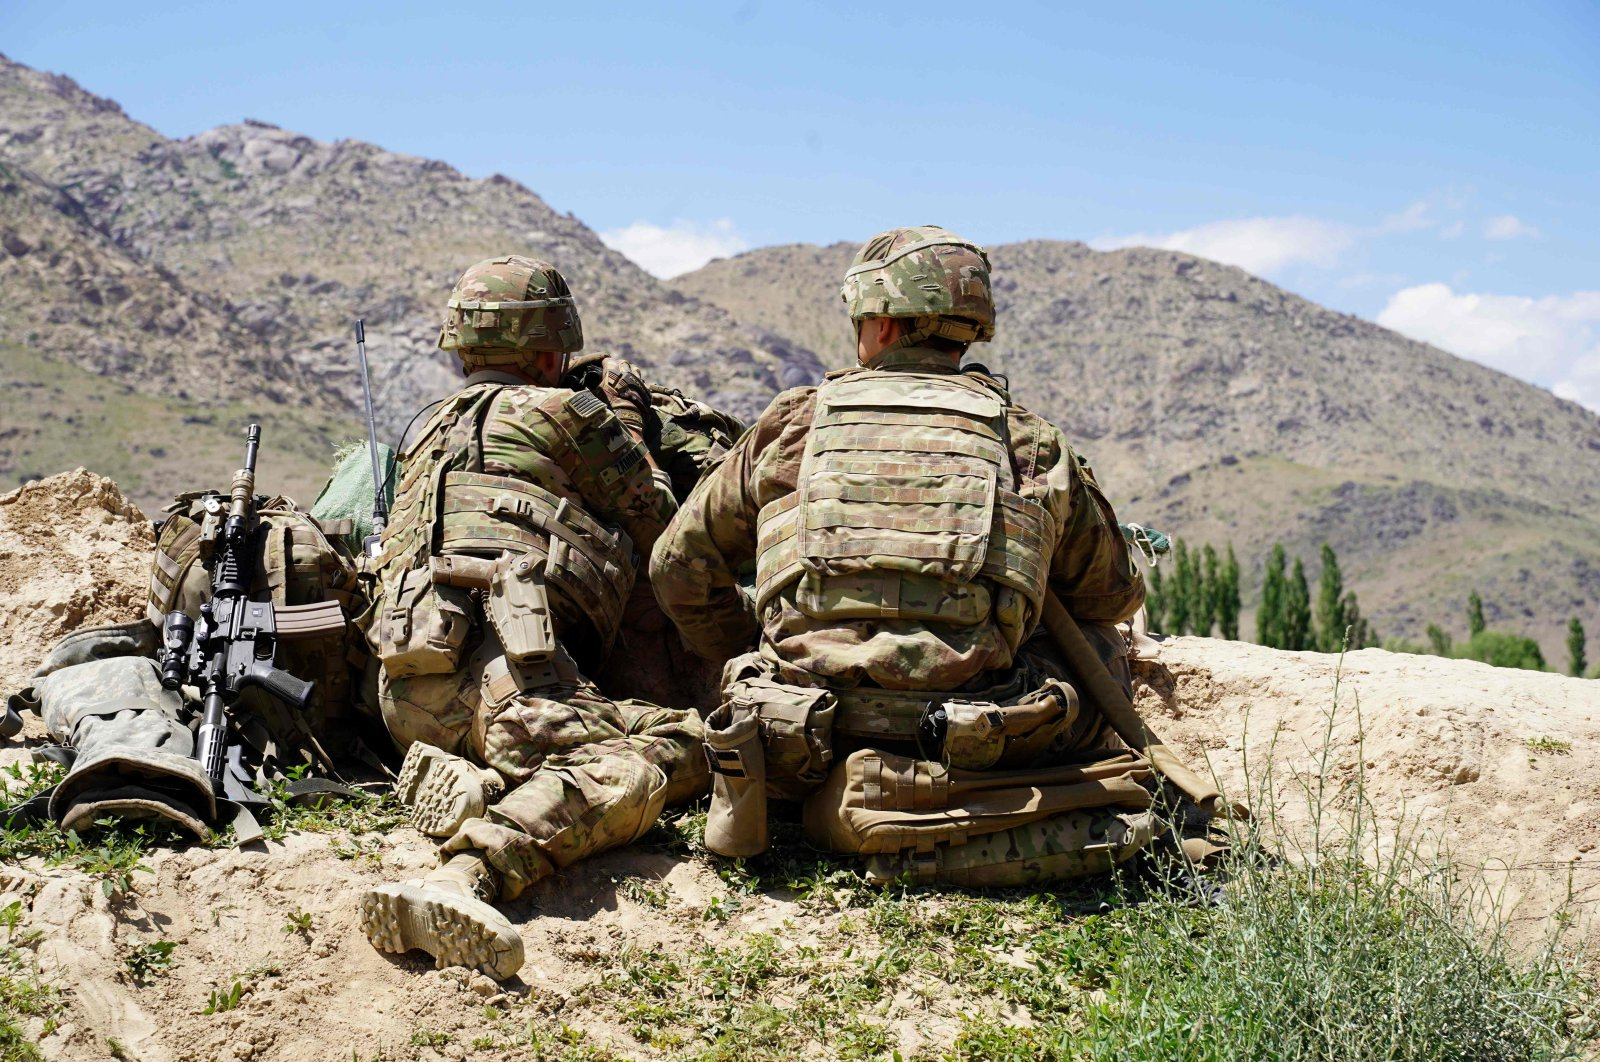 U.S. soldiers look out over hillsides during a visit of the commander of U.S. and NATO forces in Afghanistan, Gen. Scott Miller at the Afghan National Army (ANA) checkpoint in Nerkh district of Wardak province, Afghanistan, June 6, 2019. (AFP Photo)